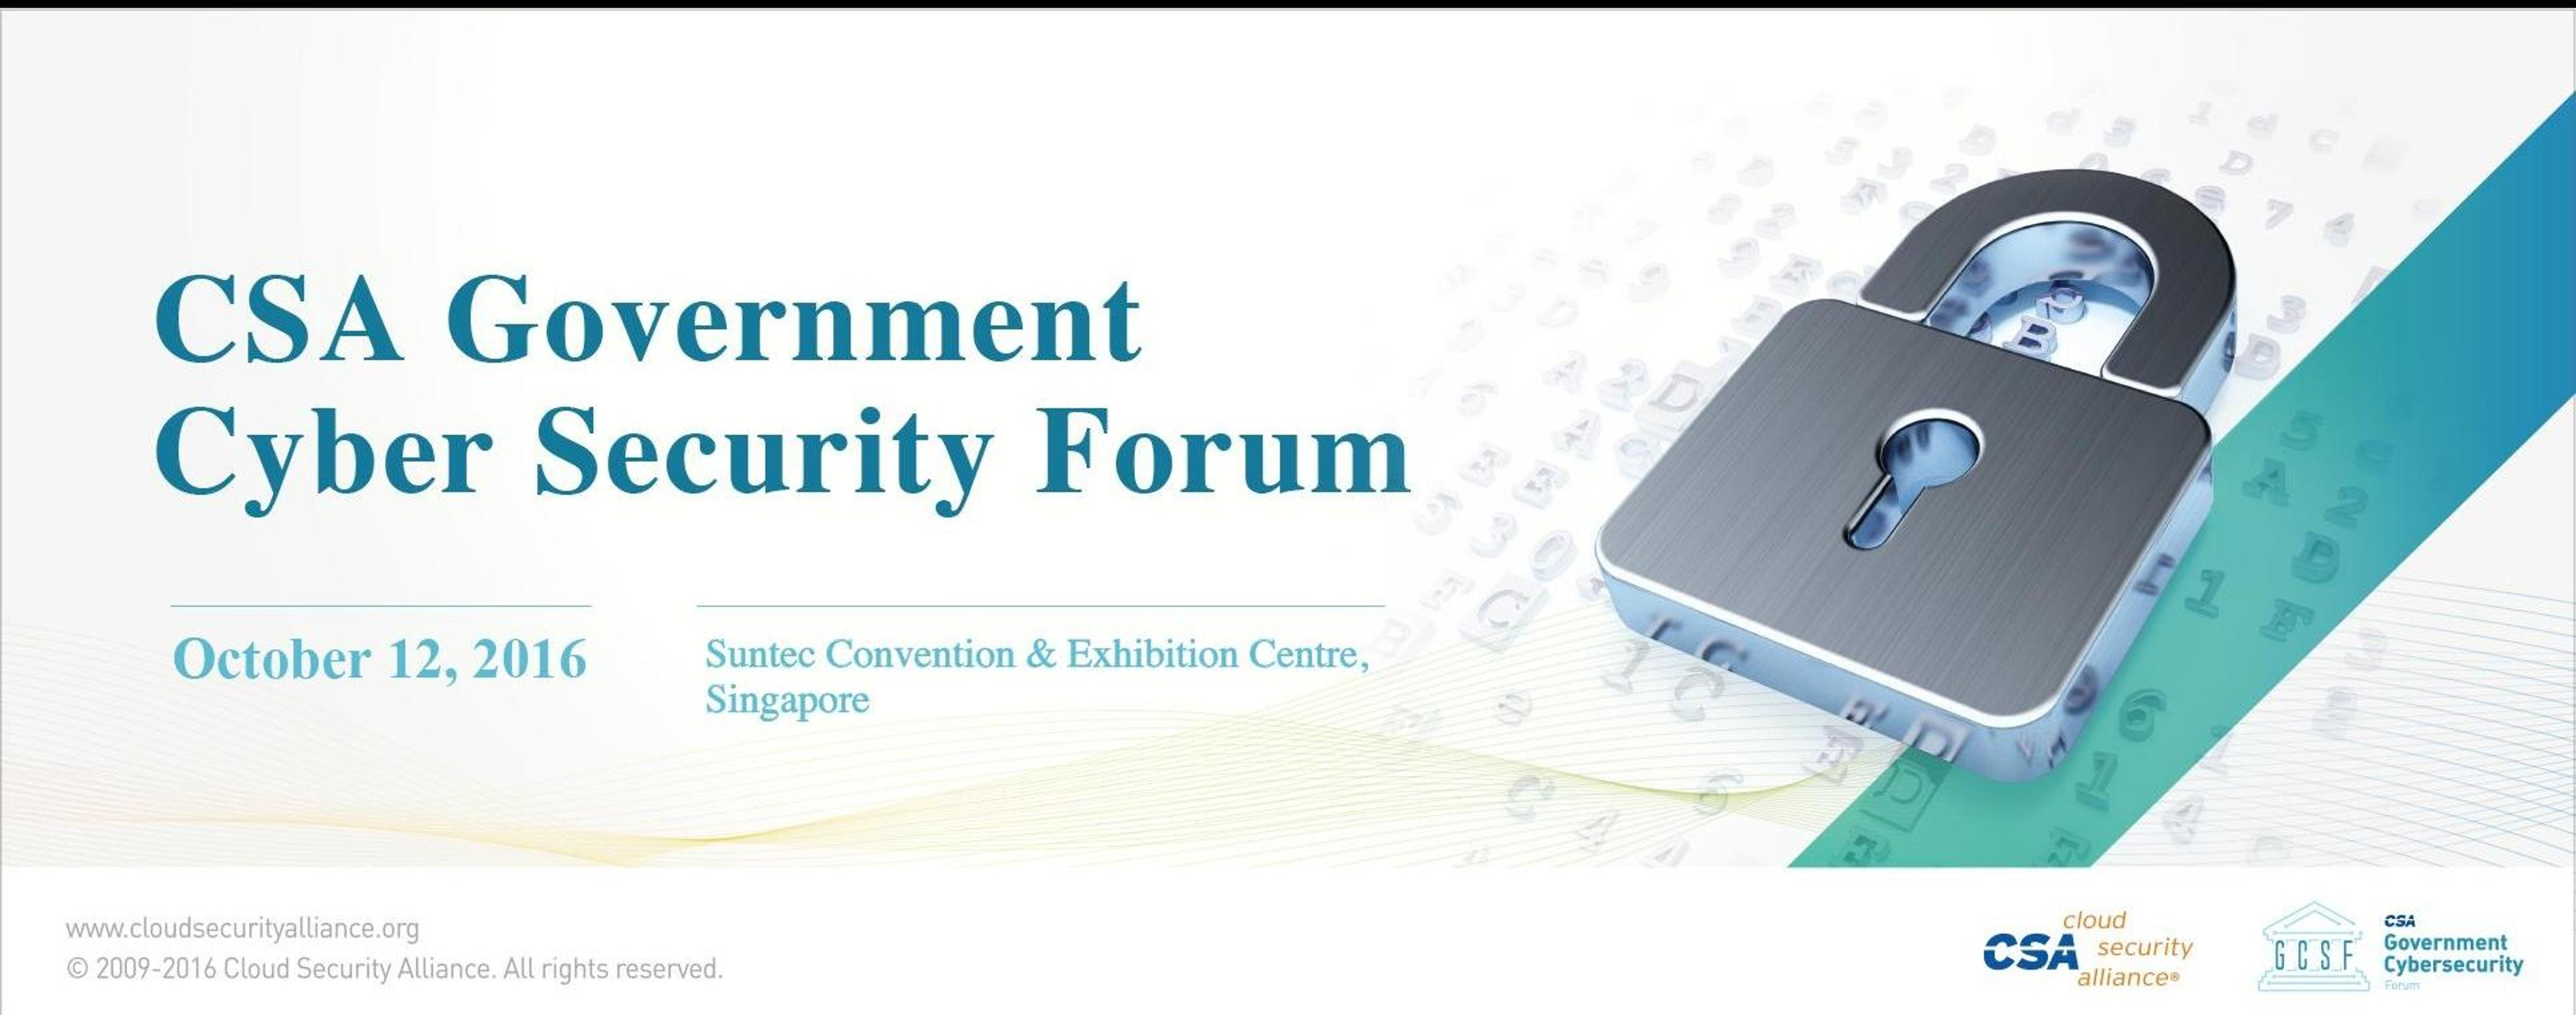 CSA Government Cyber Security Forum 2016 | Cloud Security Alliance